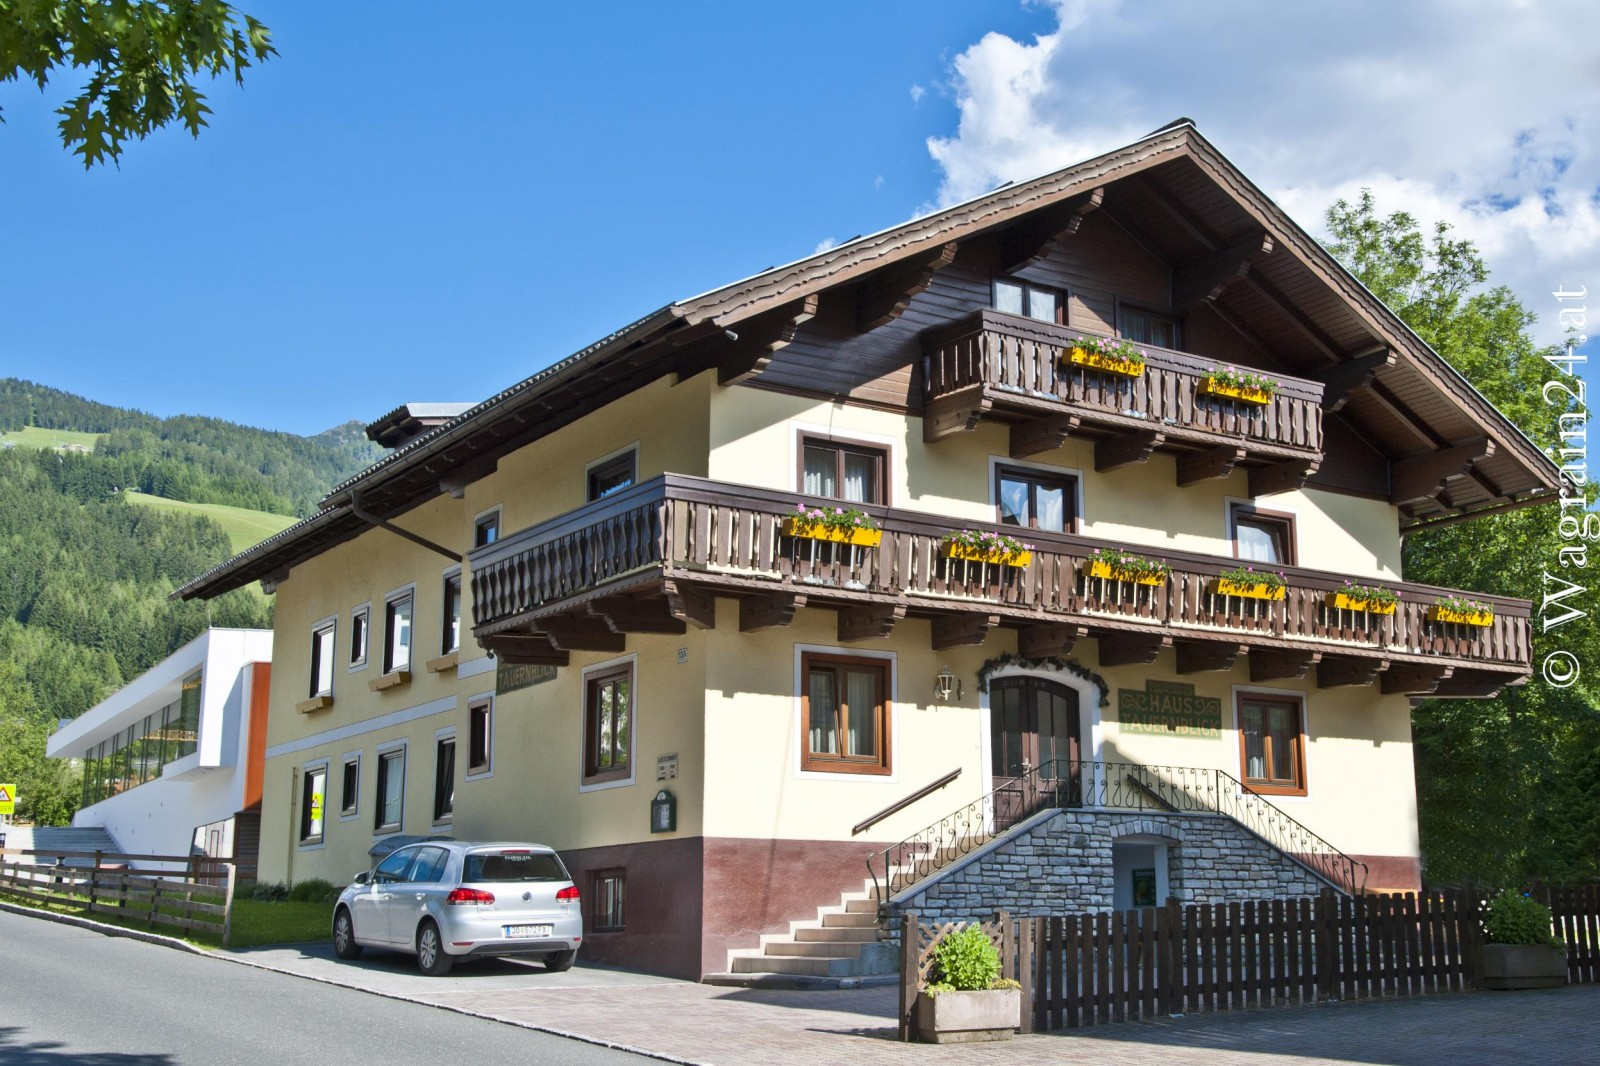 Pension tauernblick in wagrain sommer 1 haus tauernblick for Haus foto